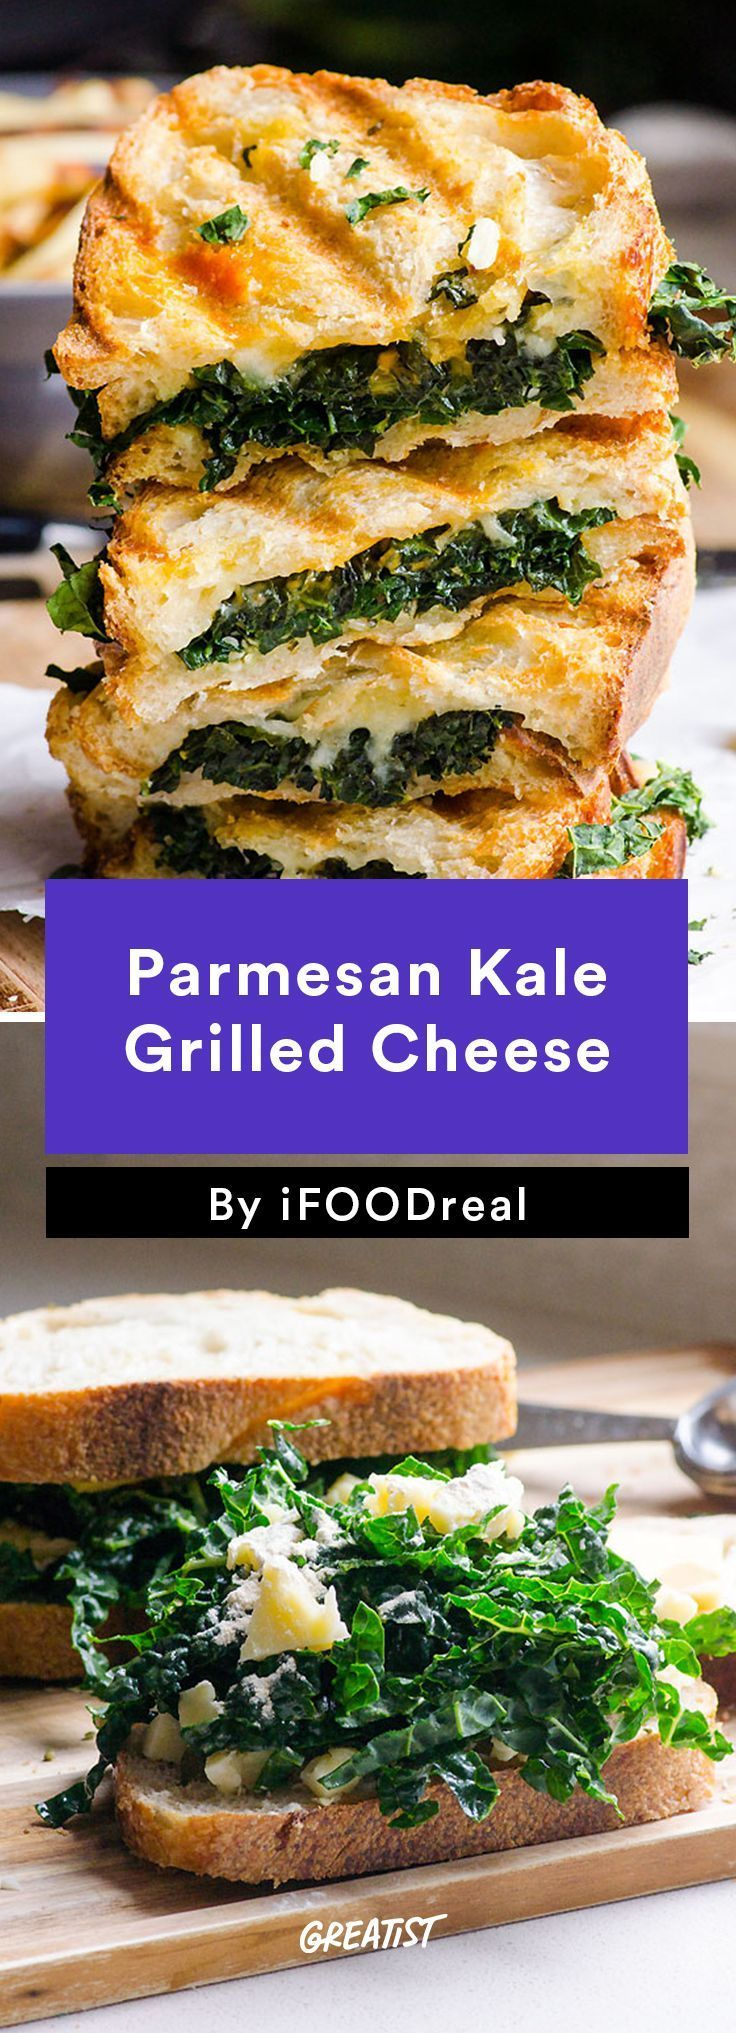 2. Parmesan Kale Grilled Cheese #healthy #weeknight #dinners http://greatist.com/eat/clean-eating-recipes-for-busy-weeknights